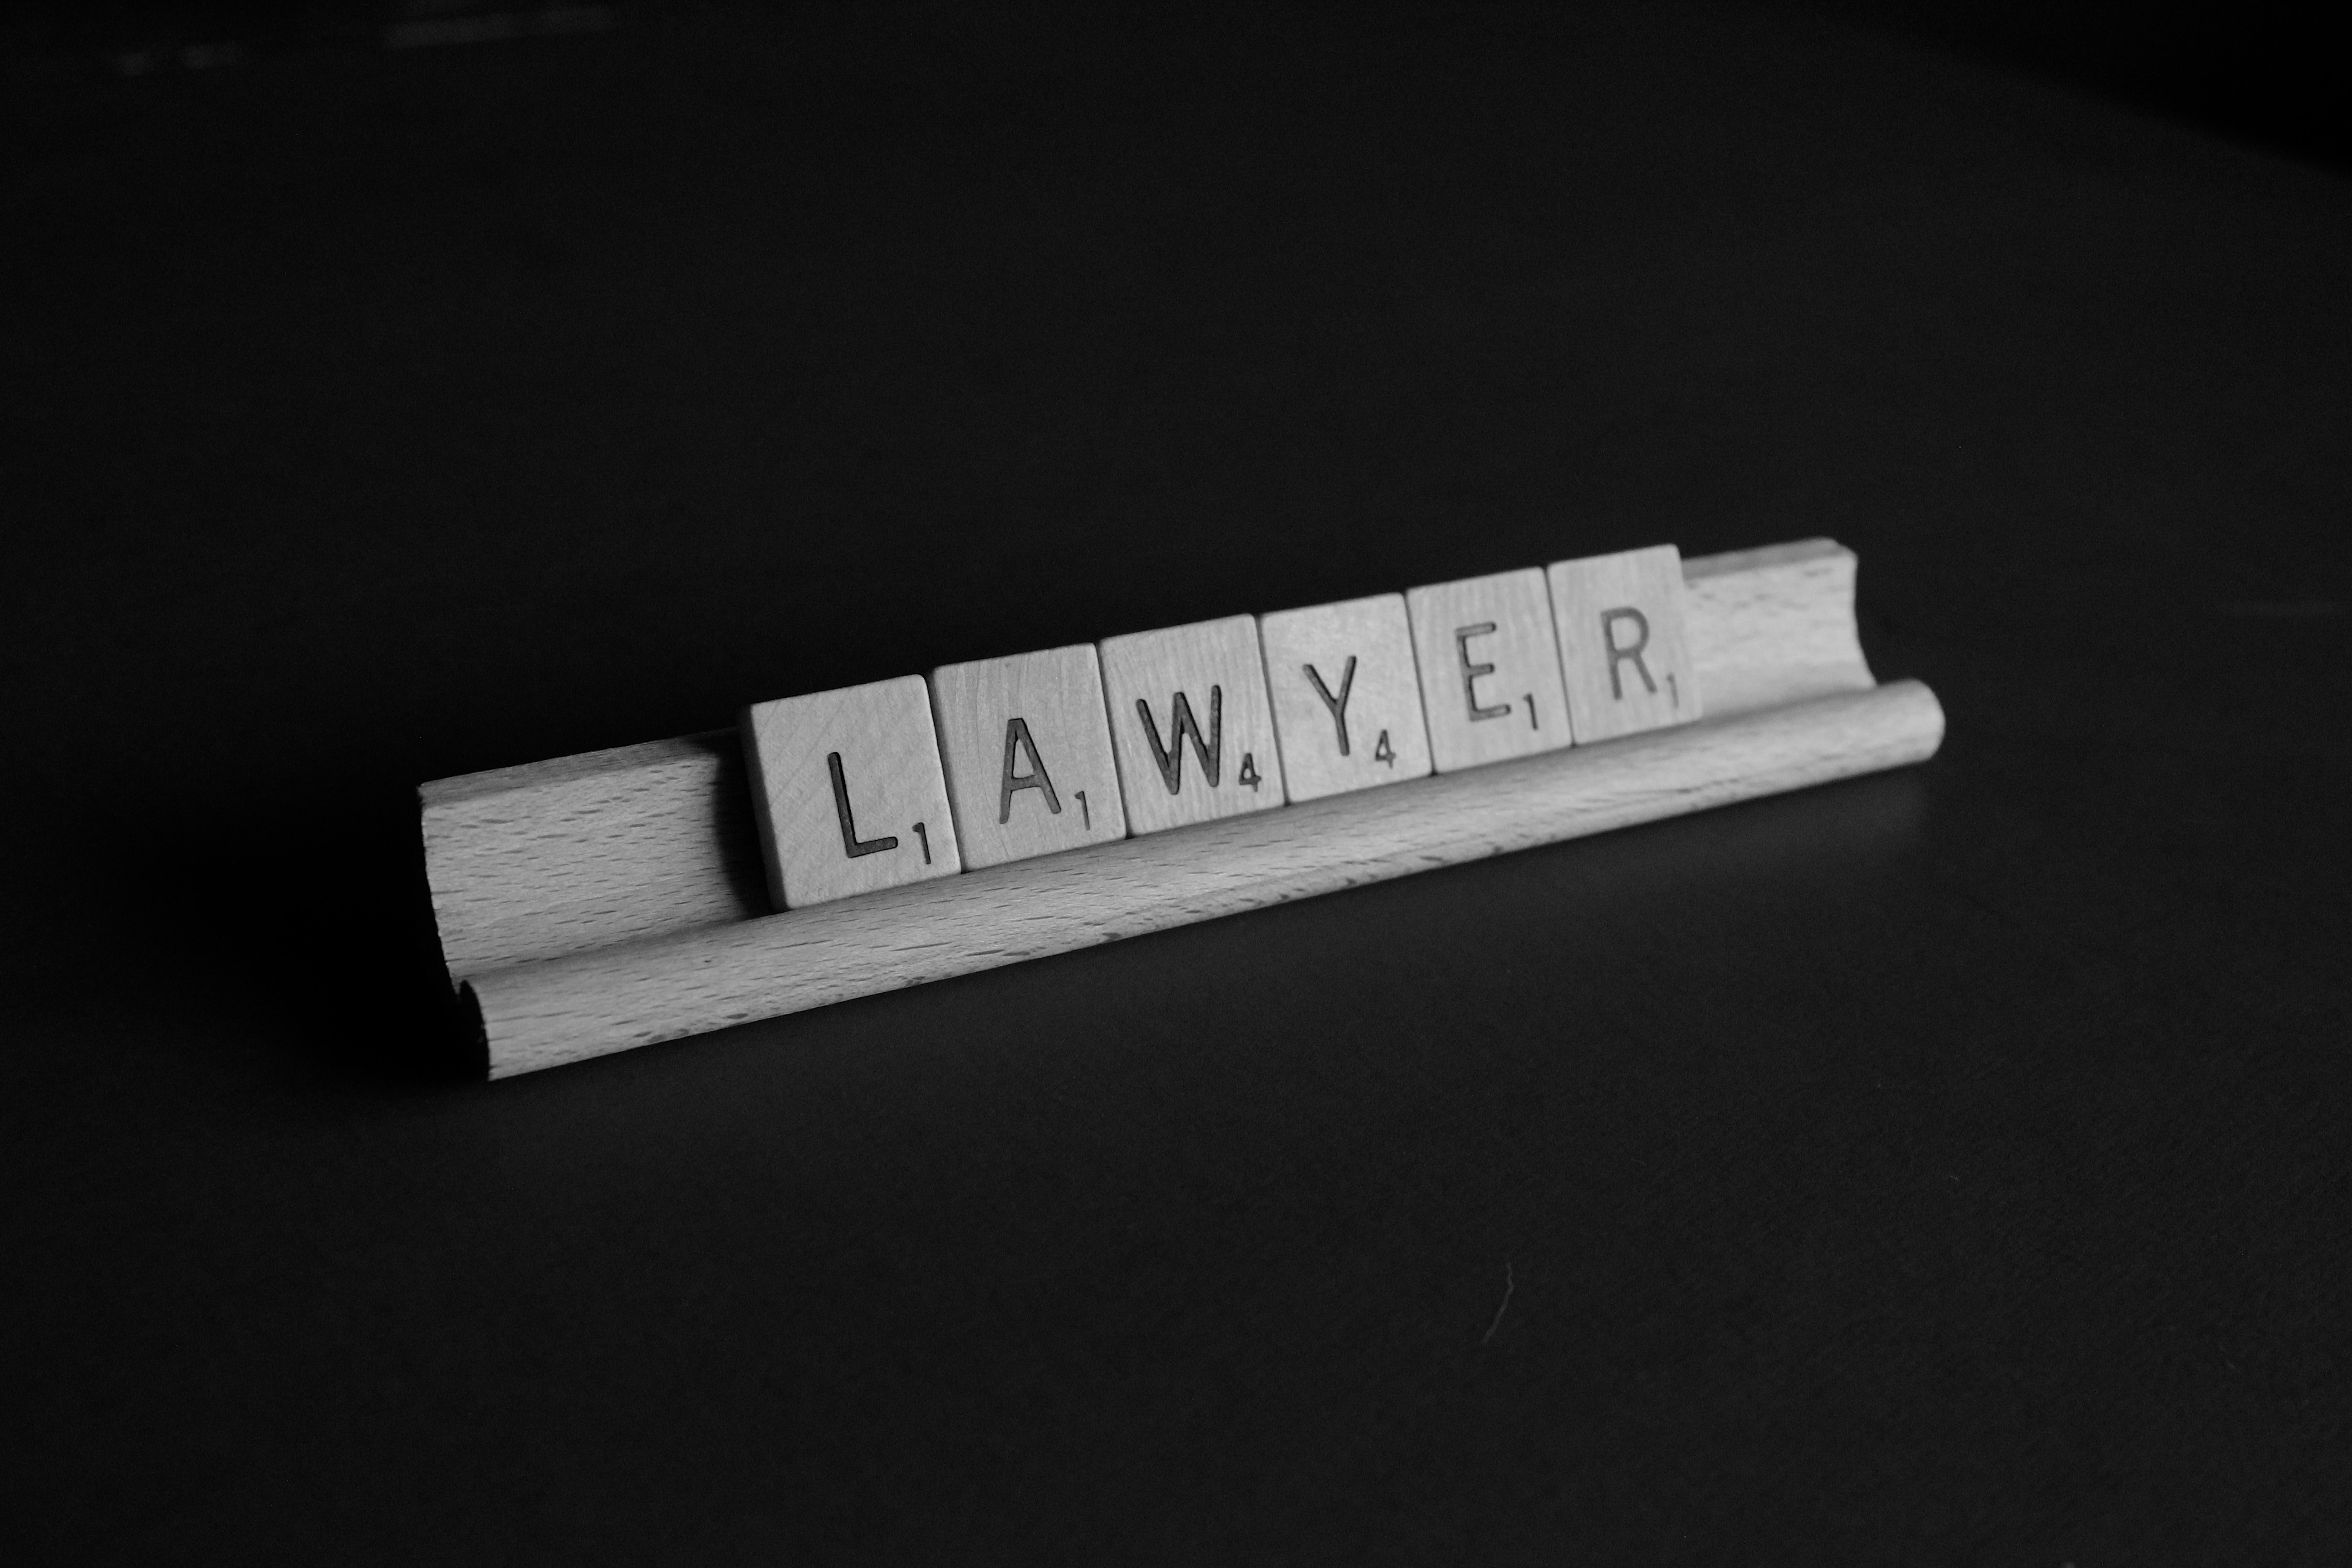 Scrabble board with lawyer as a word